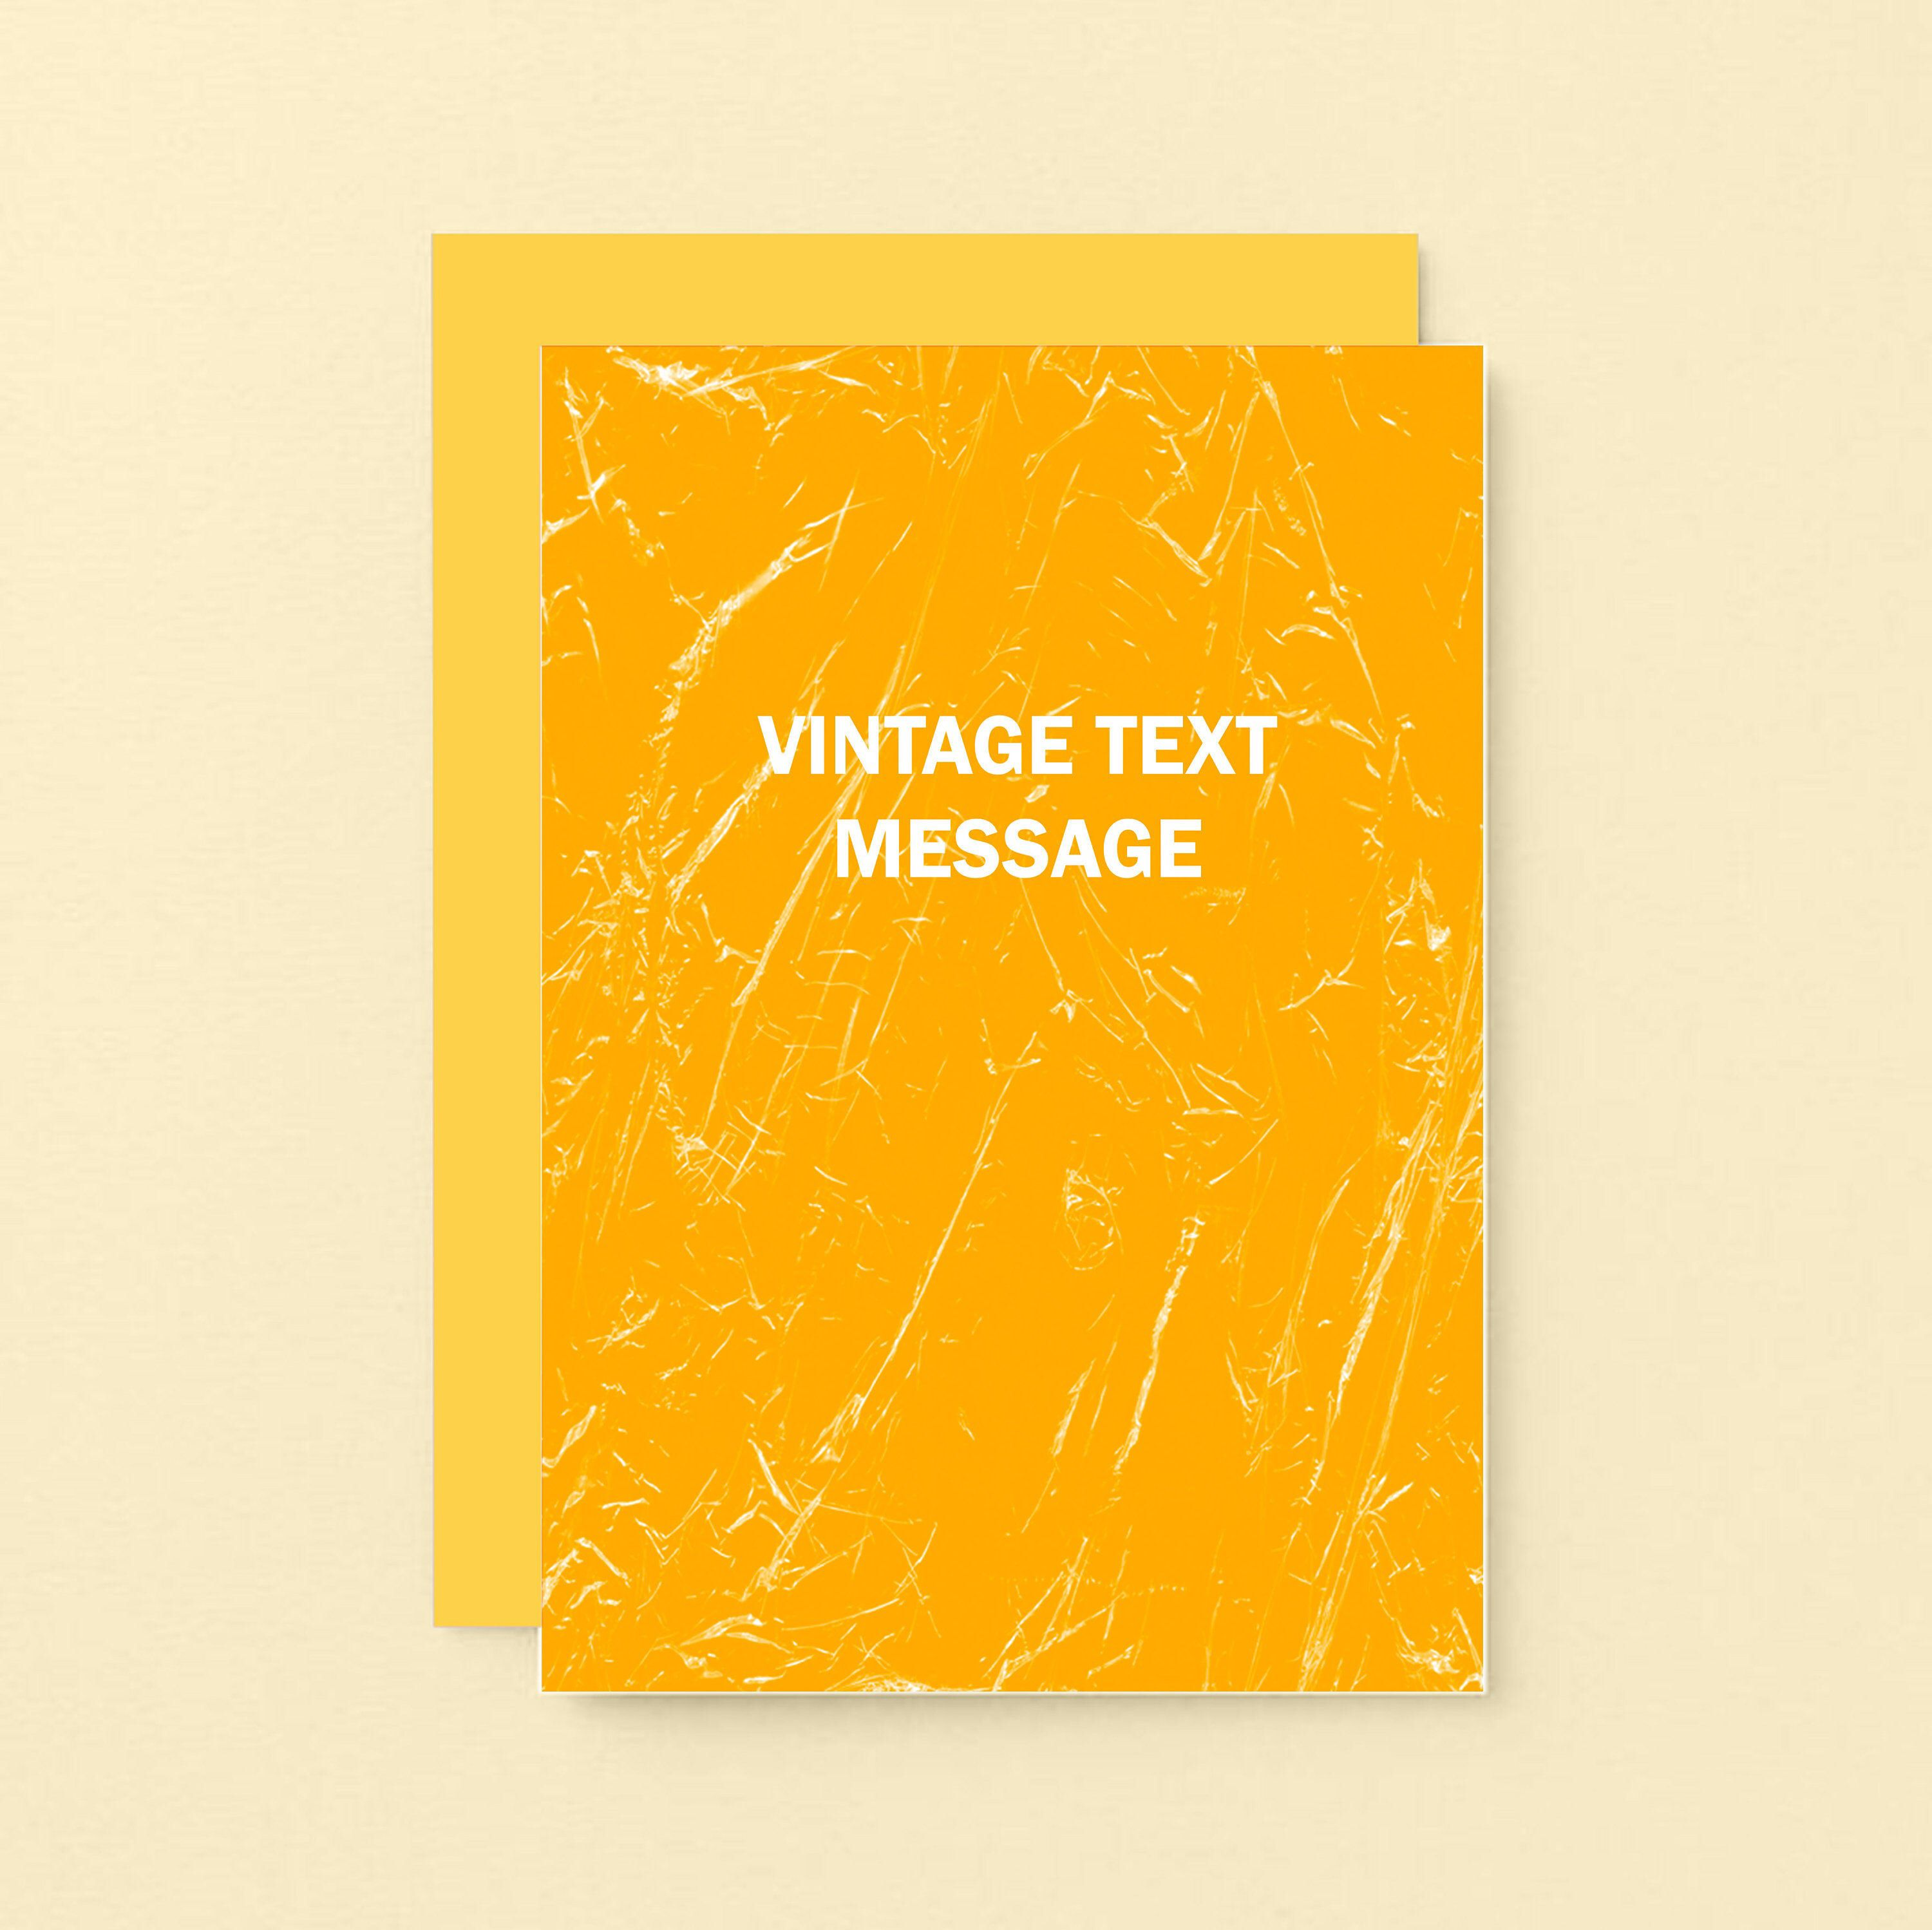 Vintage Text Message Card For Friend Birthday Card Congratulations New Job Funny New Home Card Graduation Bon Voyage Se3060a6 In 2020 Birthday Cards For Friends Message Card Vintage Text